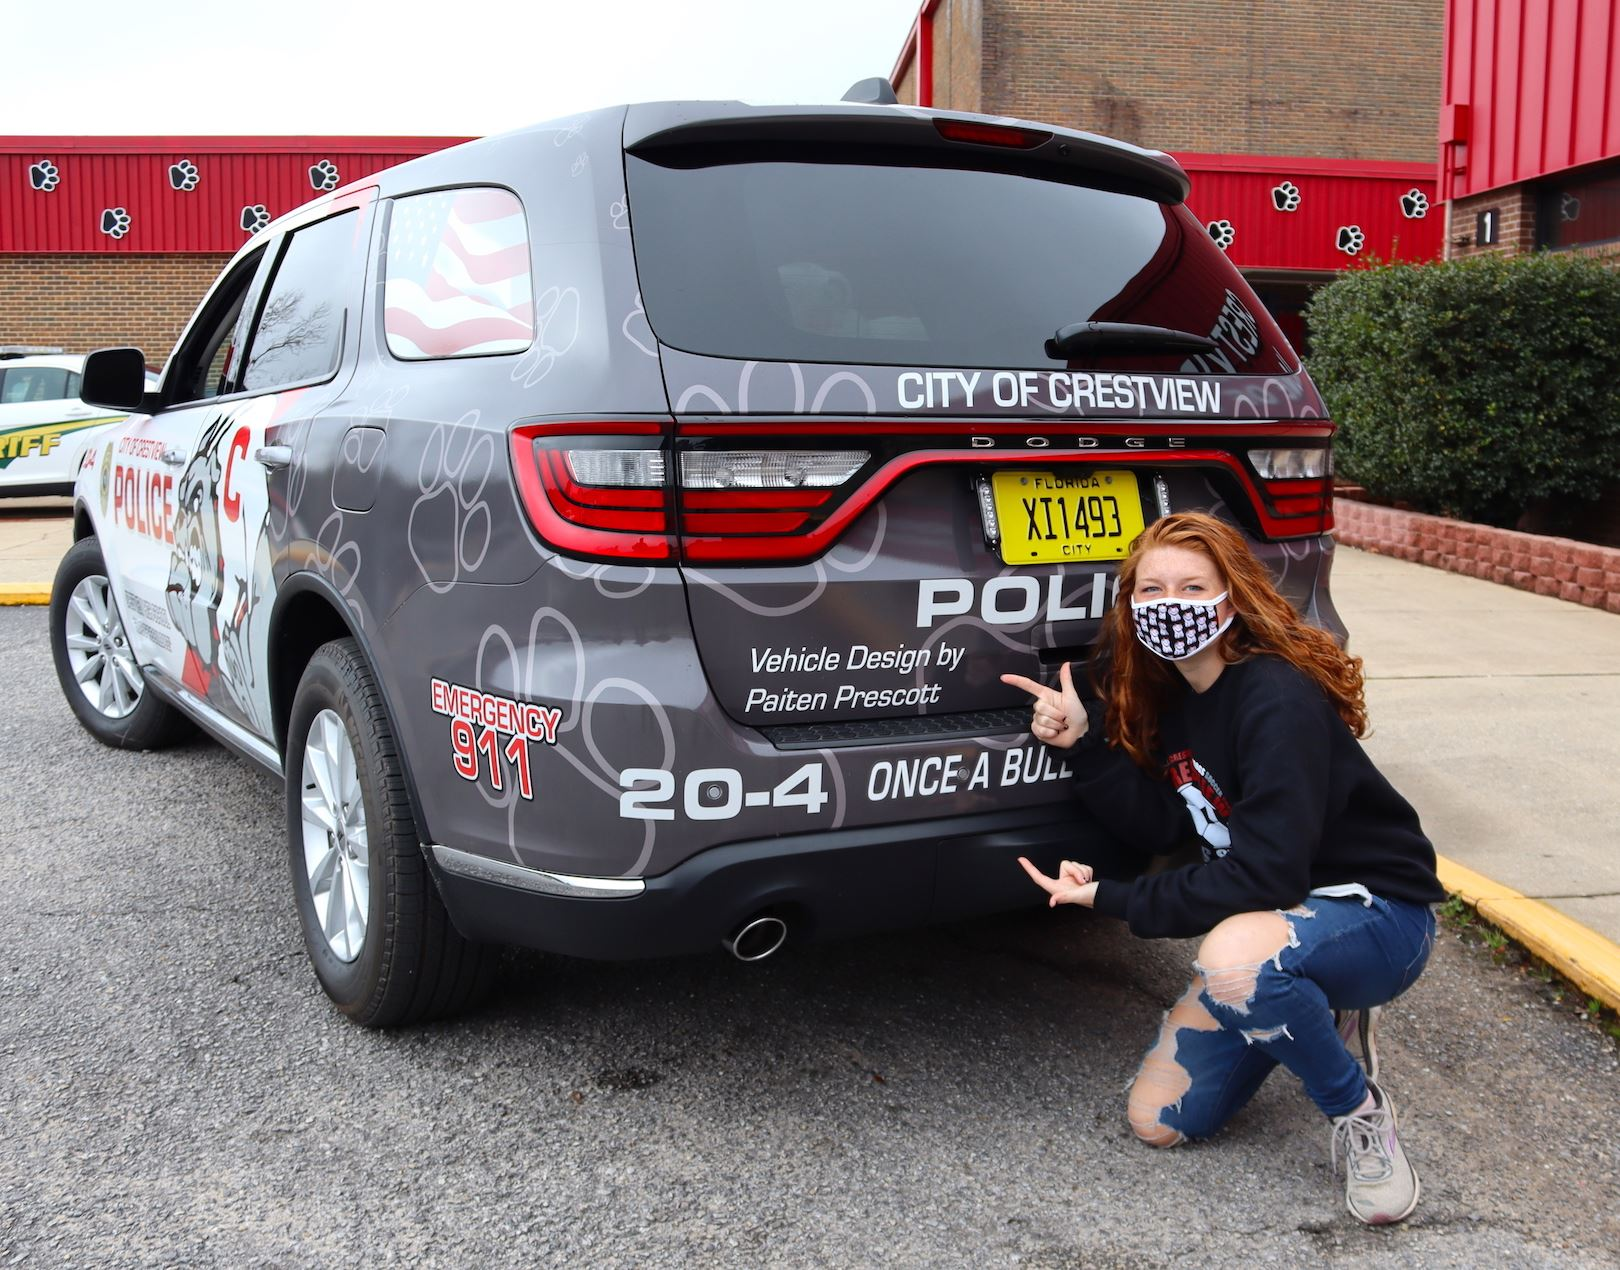 A Crestview High School student poses next to the police car for which she designed graphics